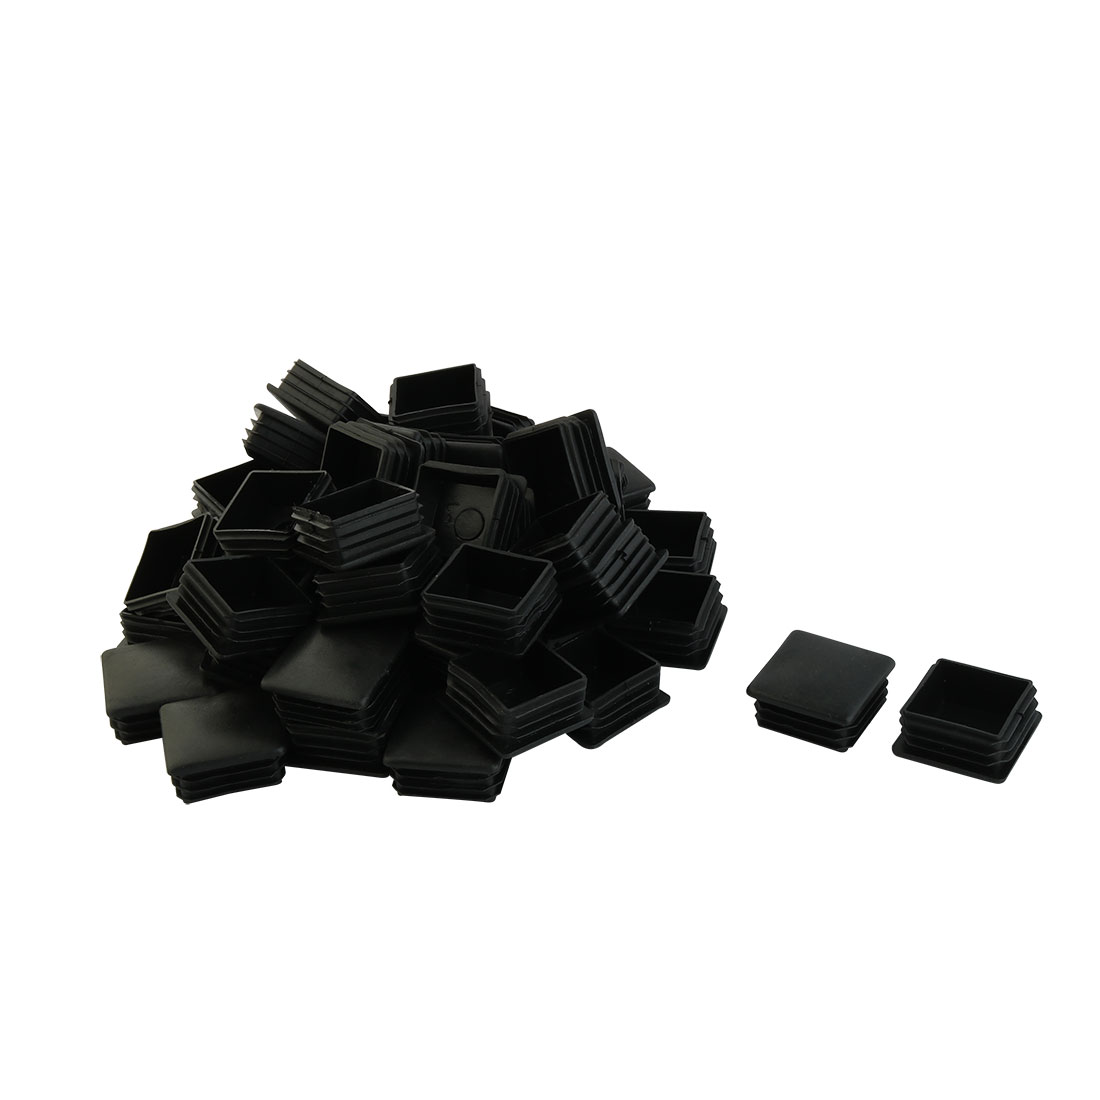 40mm x 40mm Plastic Square Table Chair Leg Feet Tube Pipe Insert End Cap Black 50pcs